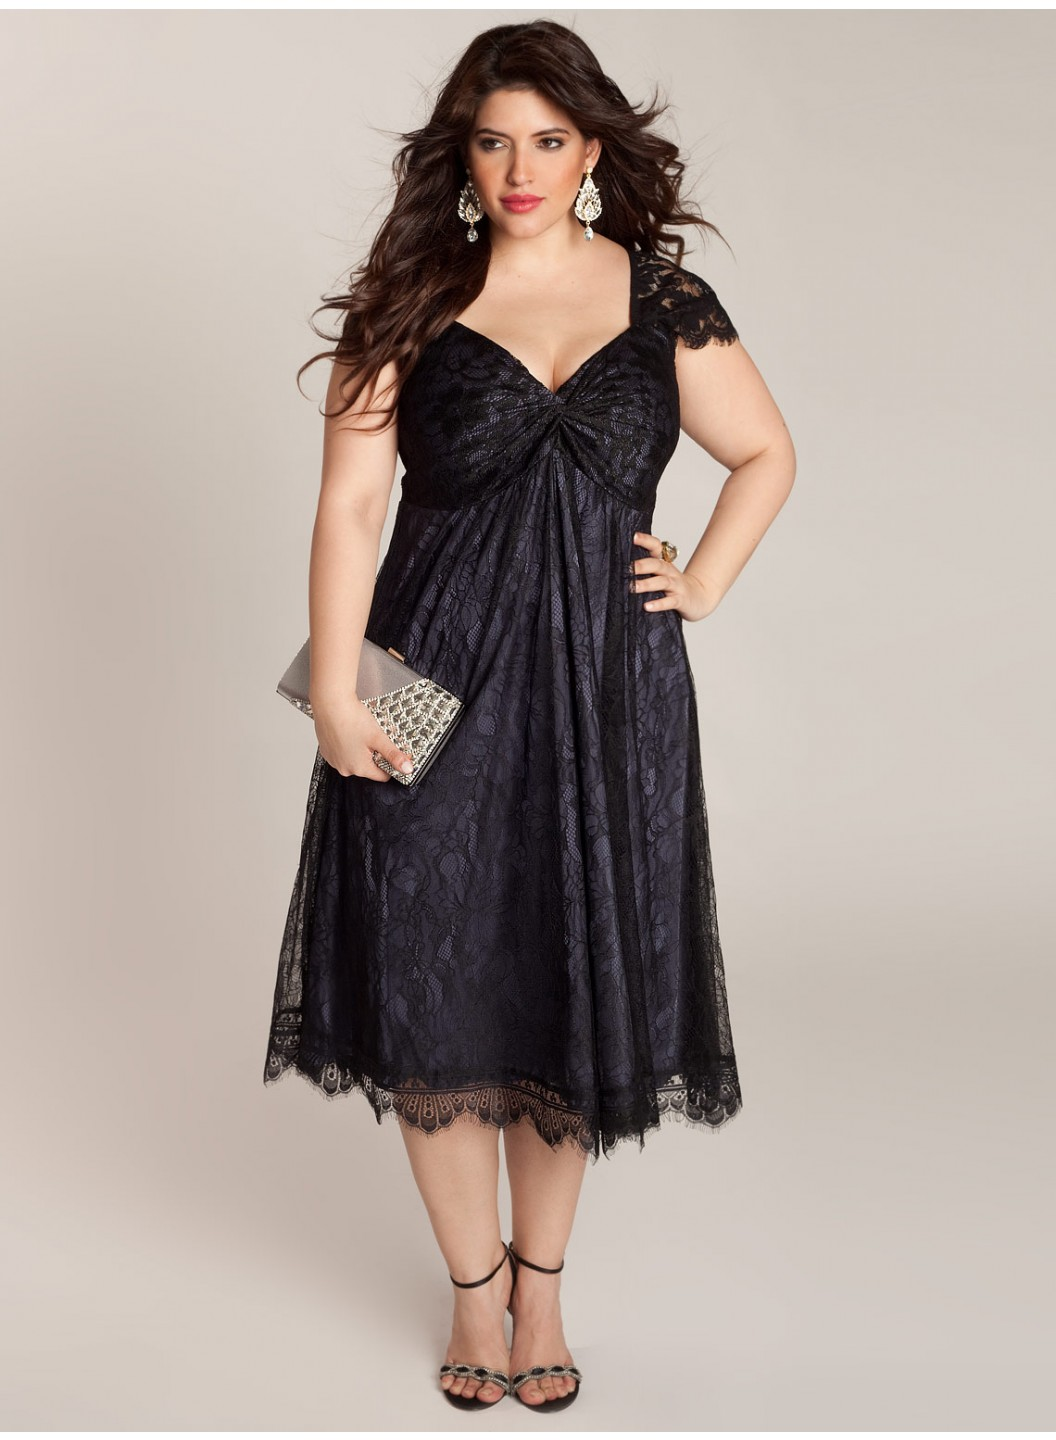 Kohl's plus-size clothing for women is made with quality materials and attention to fit, making it the ideal choice for both everyday staples and special pieces. Look and feel great in women's plus-size clothing .